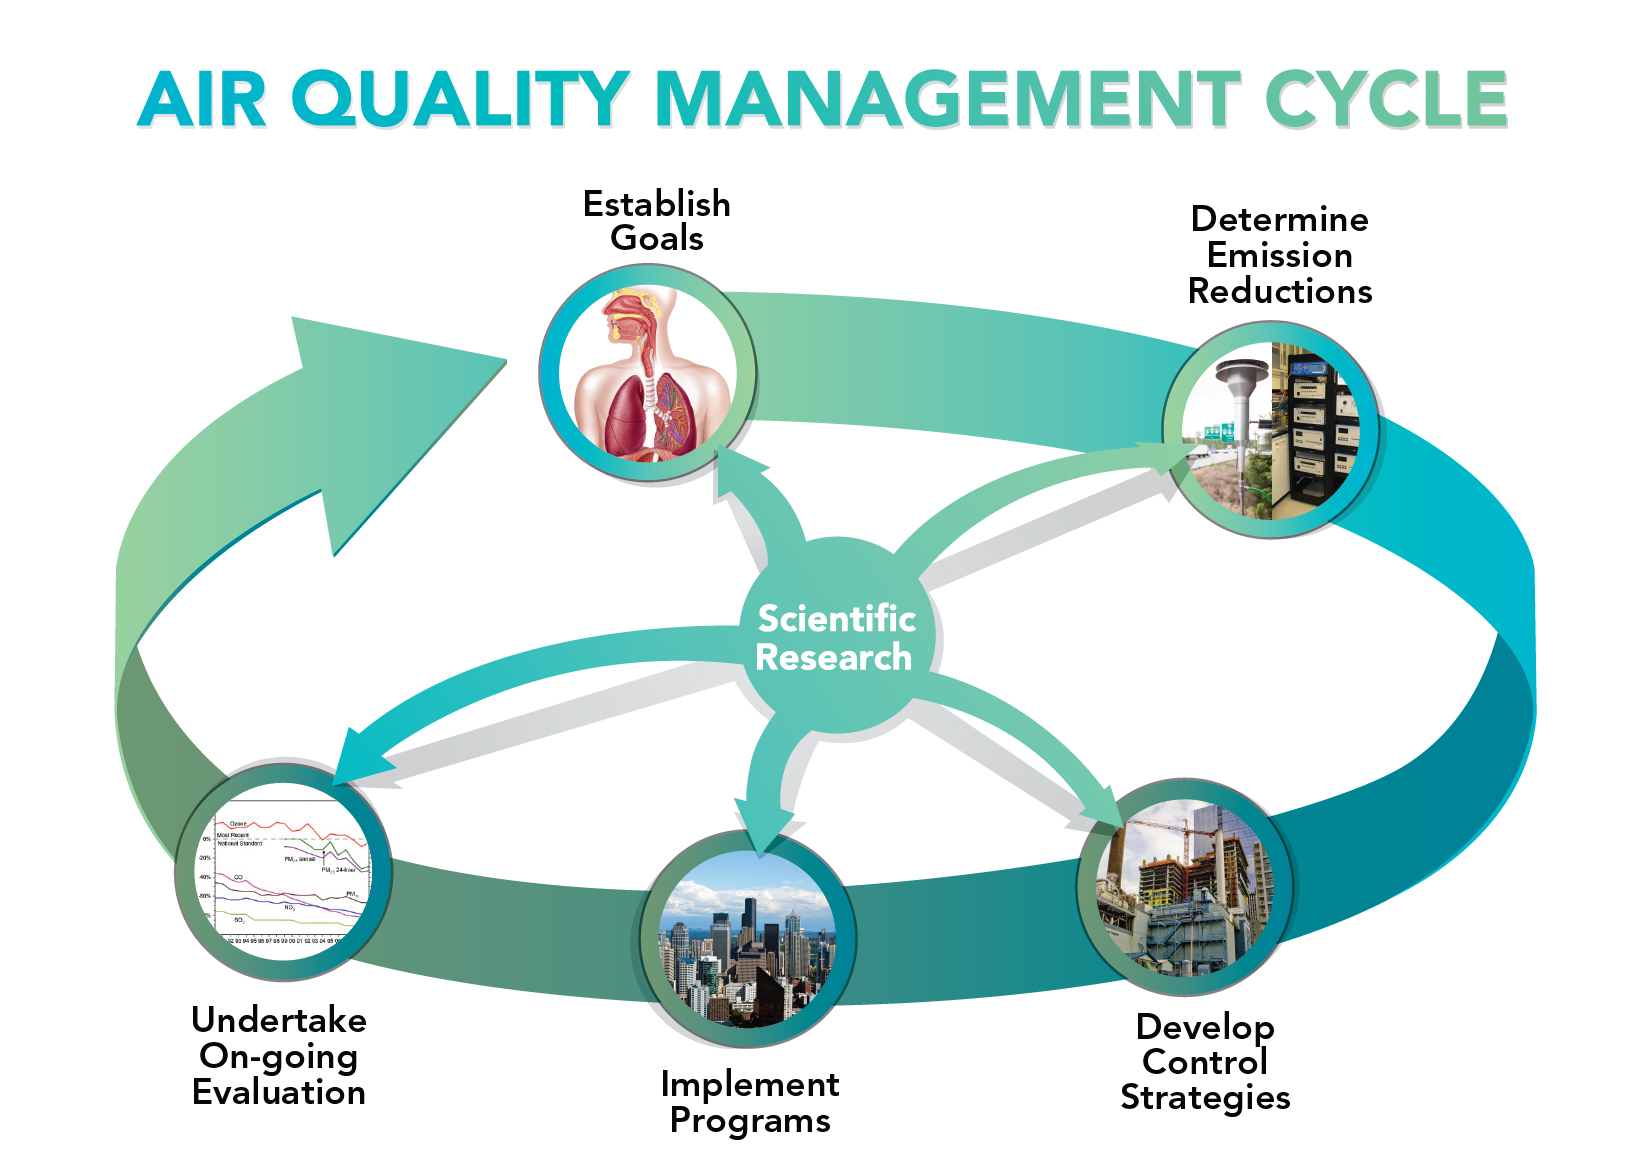 Air Quality Management Process Cycle